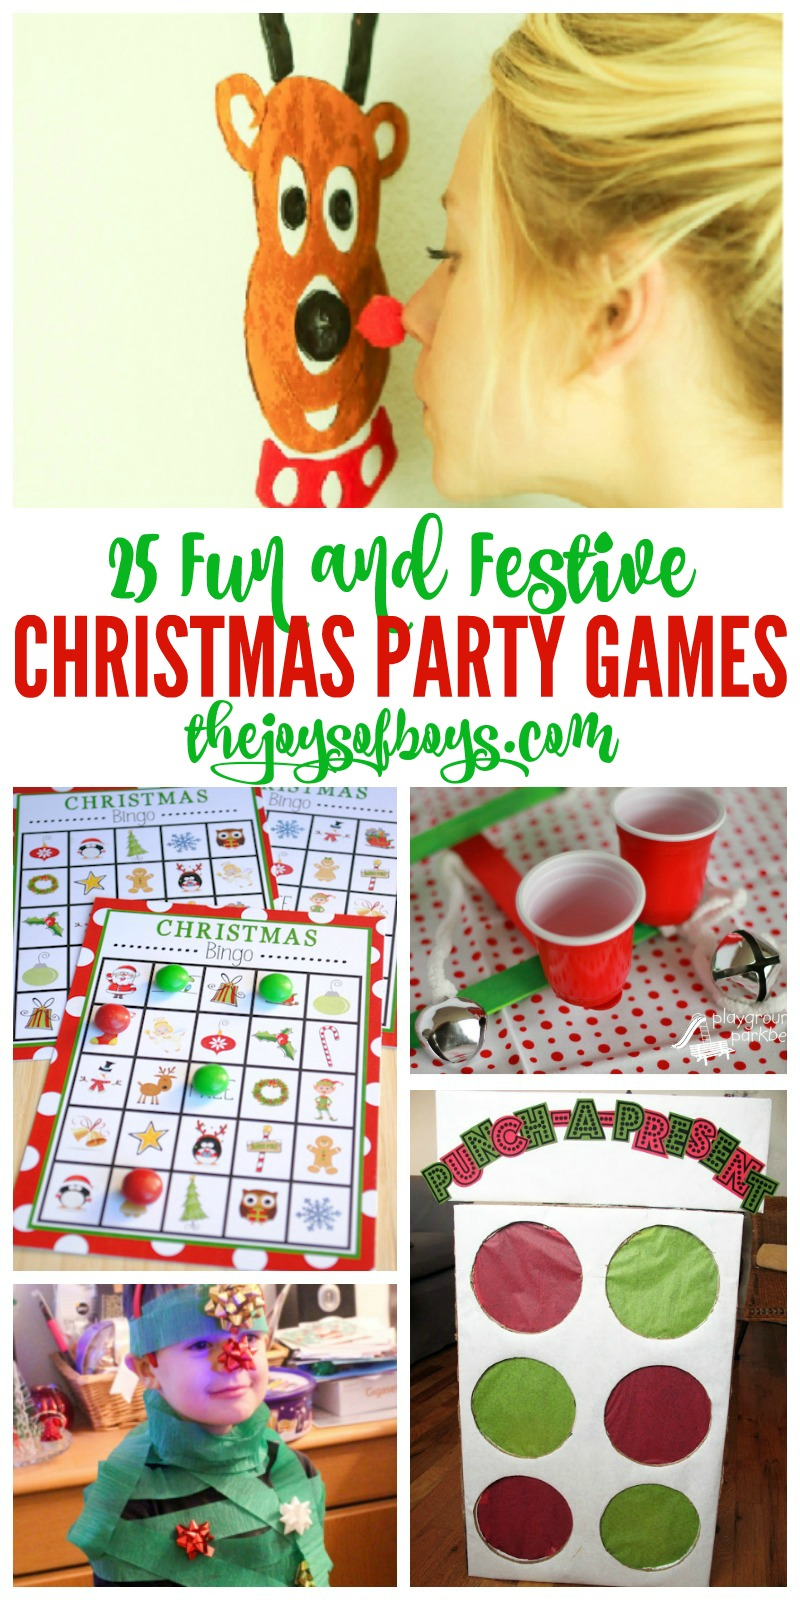 Christmas Party Games Kids and Adults